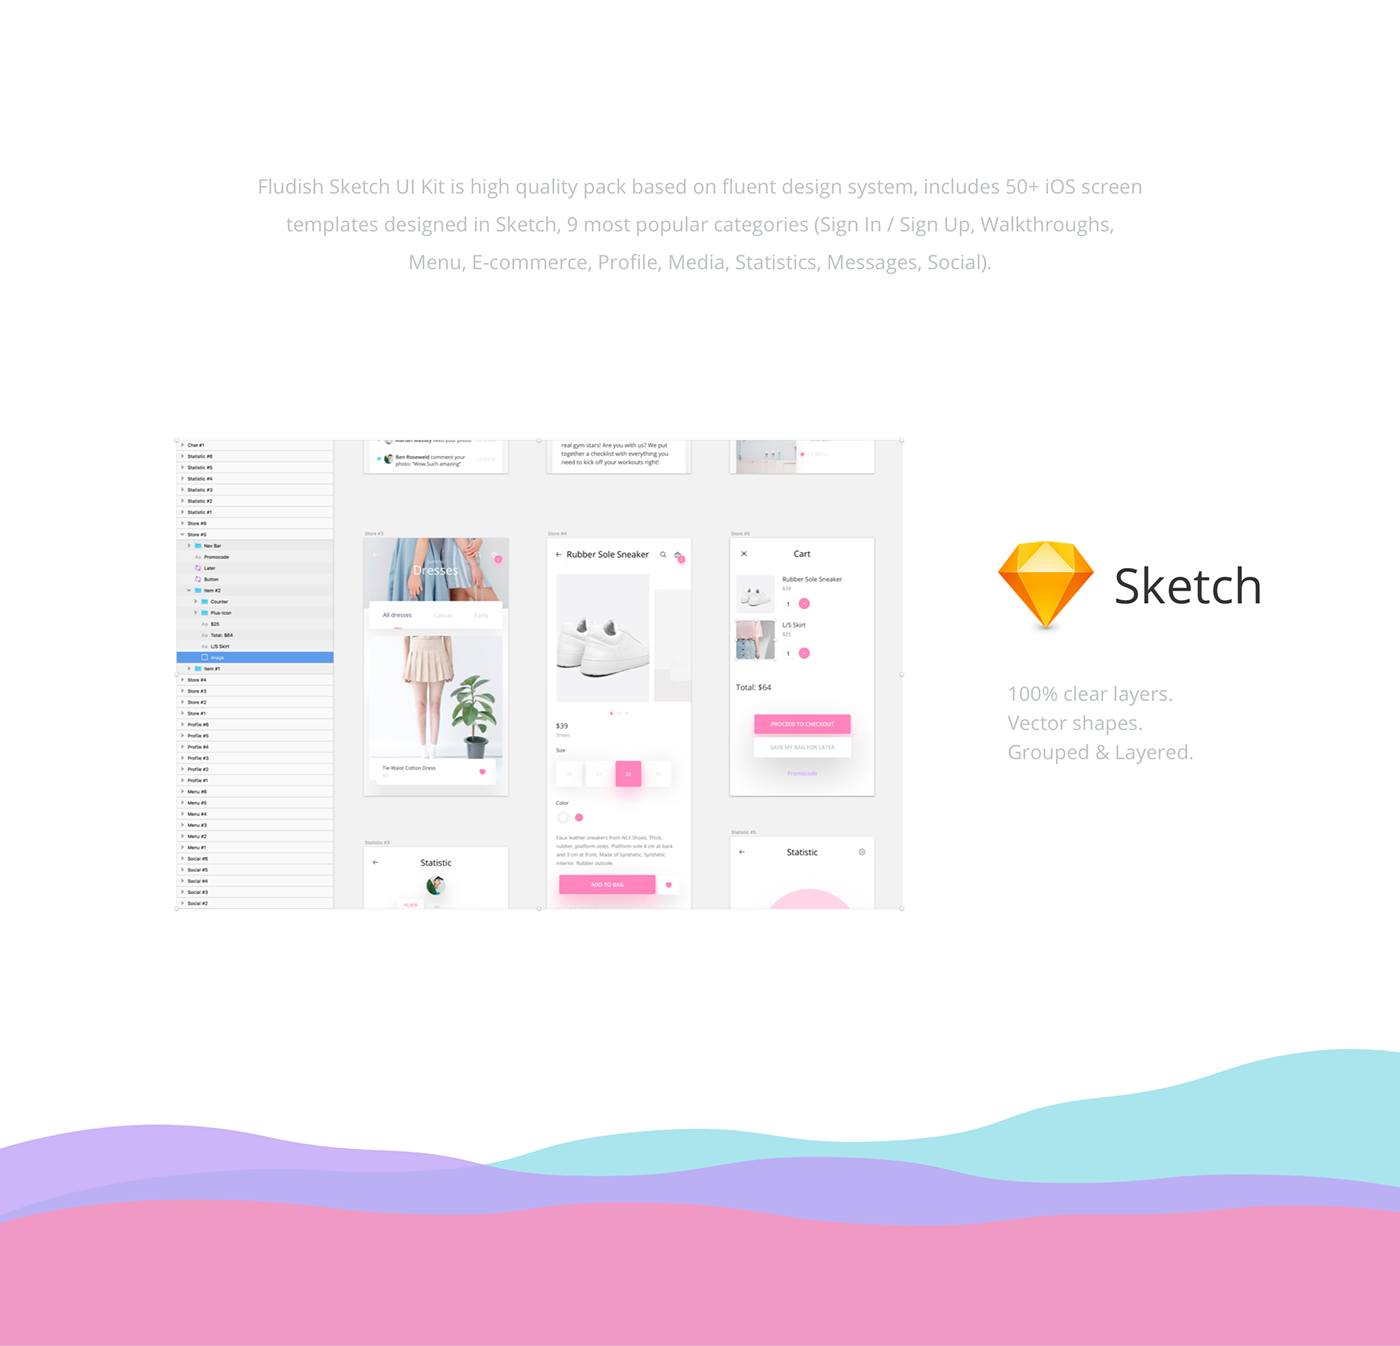 Fludish — Fluent iOS UI Kit designed for Sketch  on Behance